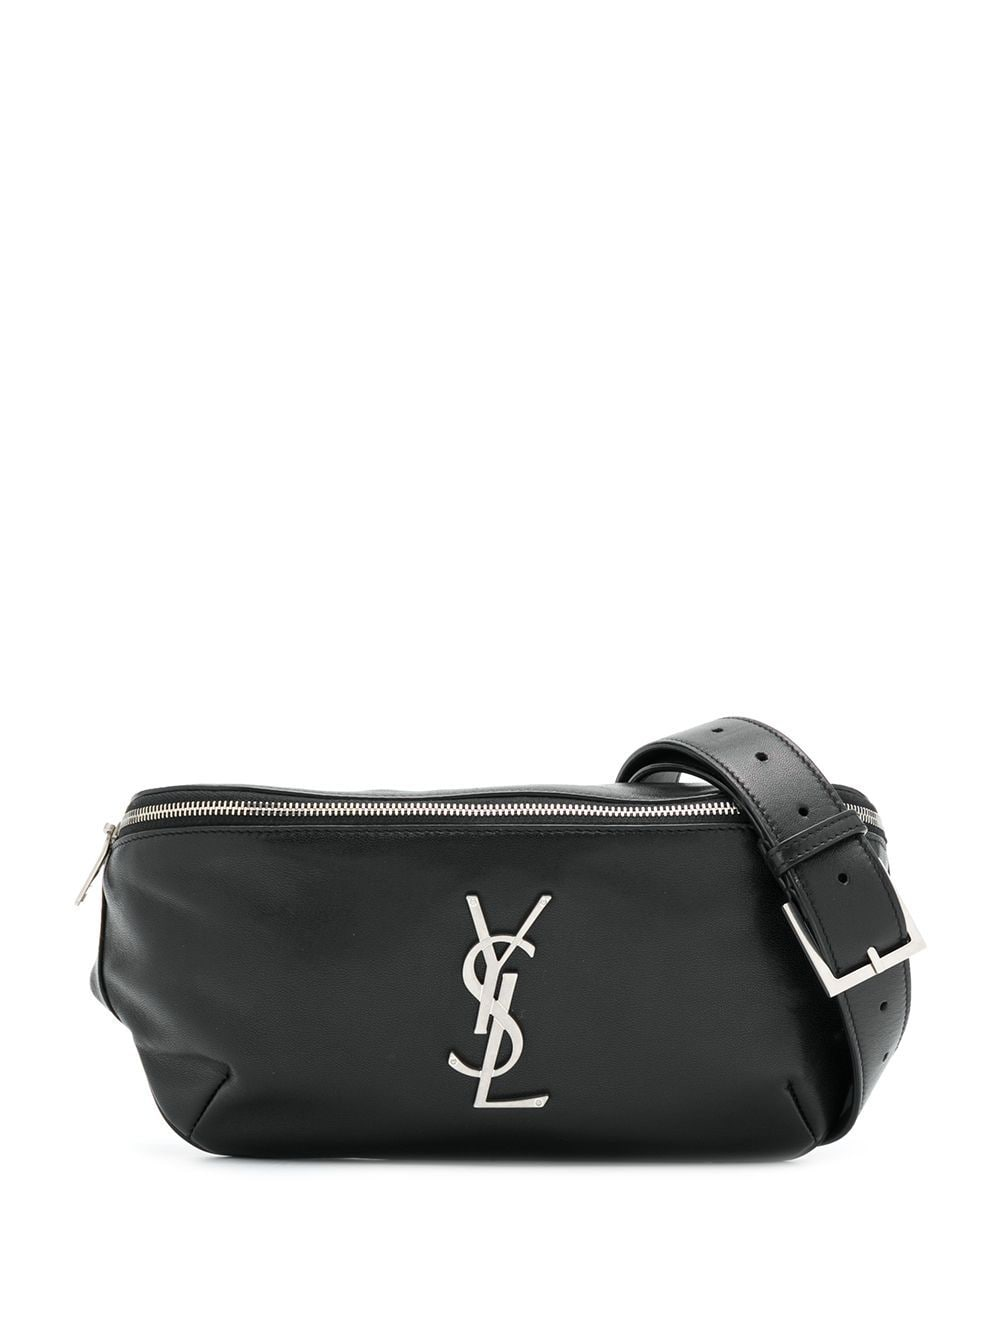 Monogram Leather Beltbag